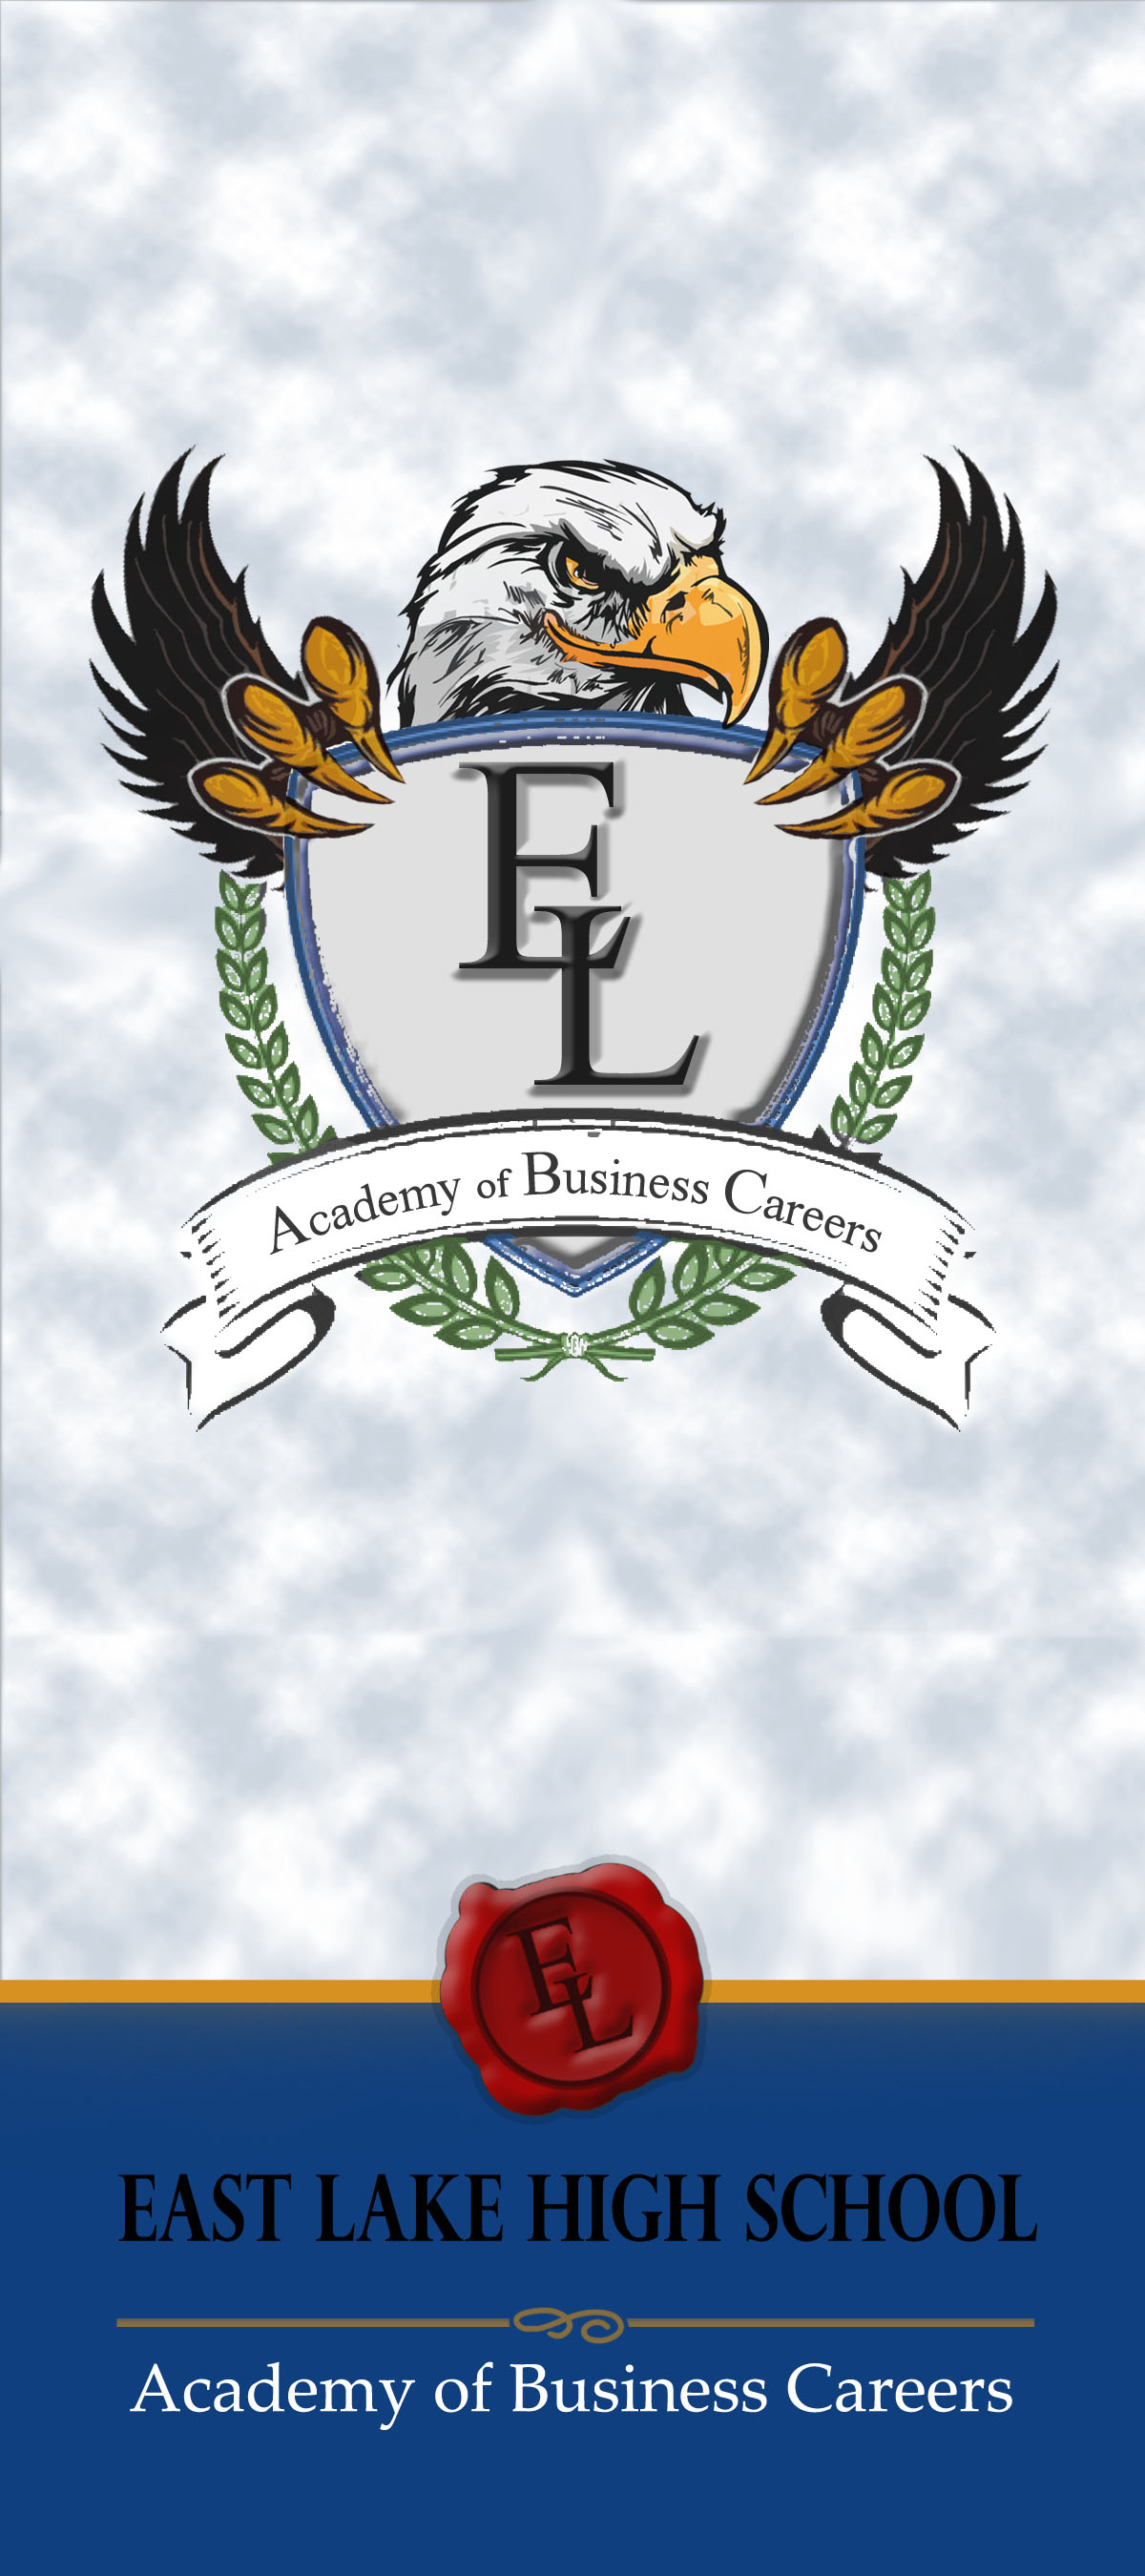 academy of business careers academy of business careers east lake high school is proud to announce that we now have a new cape academy the academy of business careers this academy allows students to take course